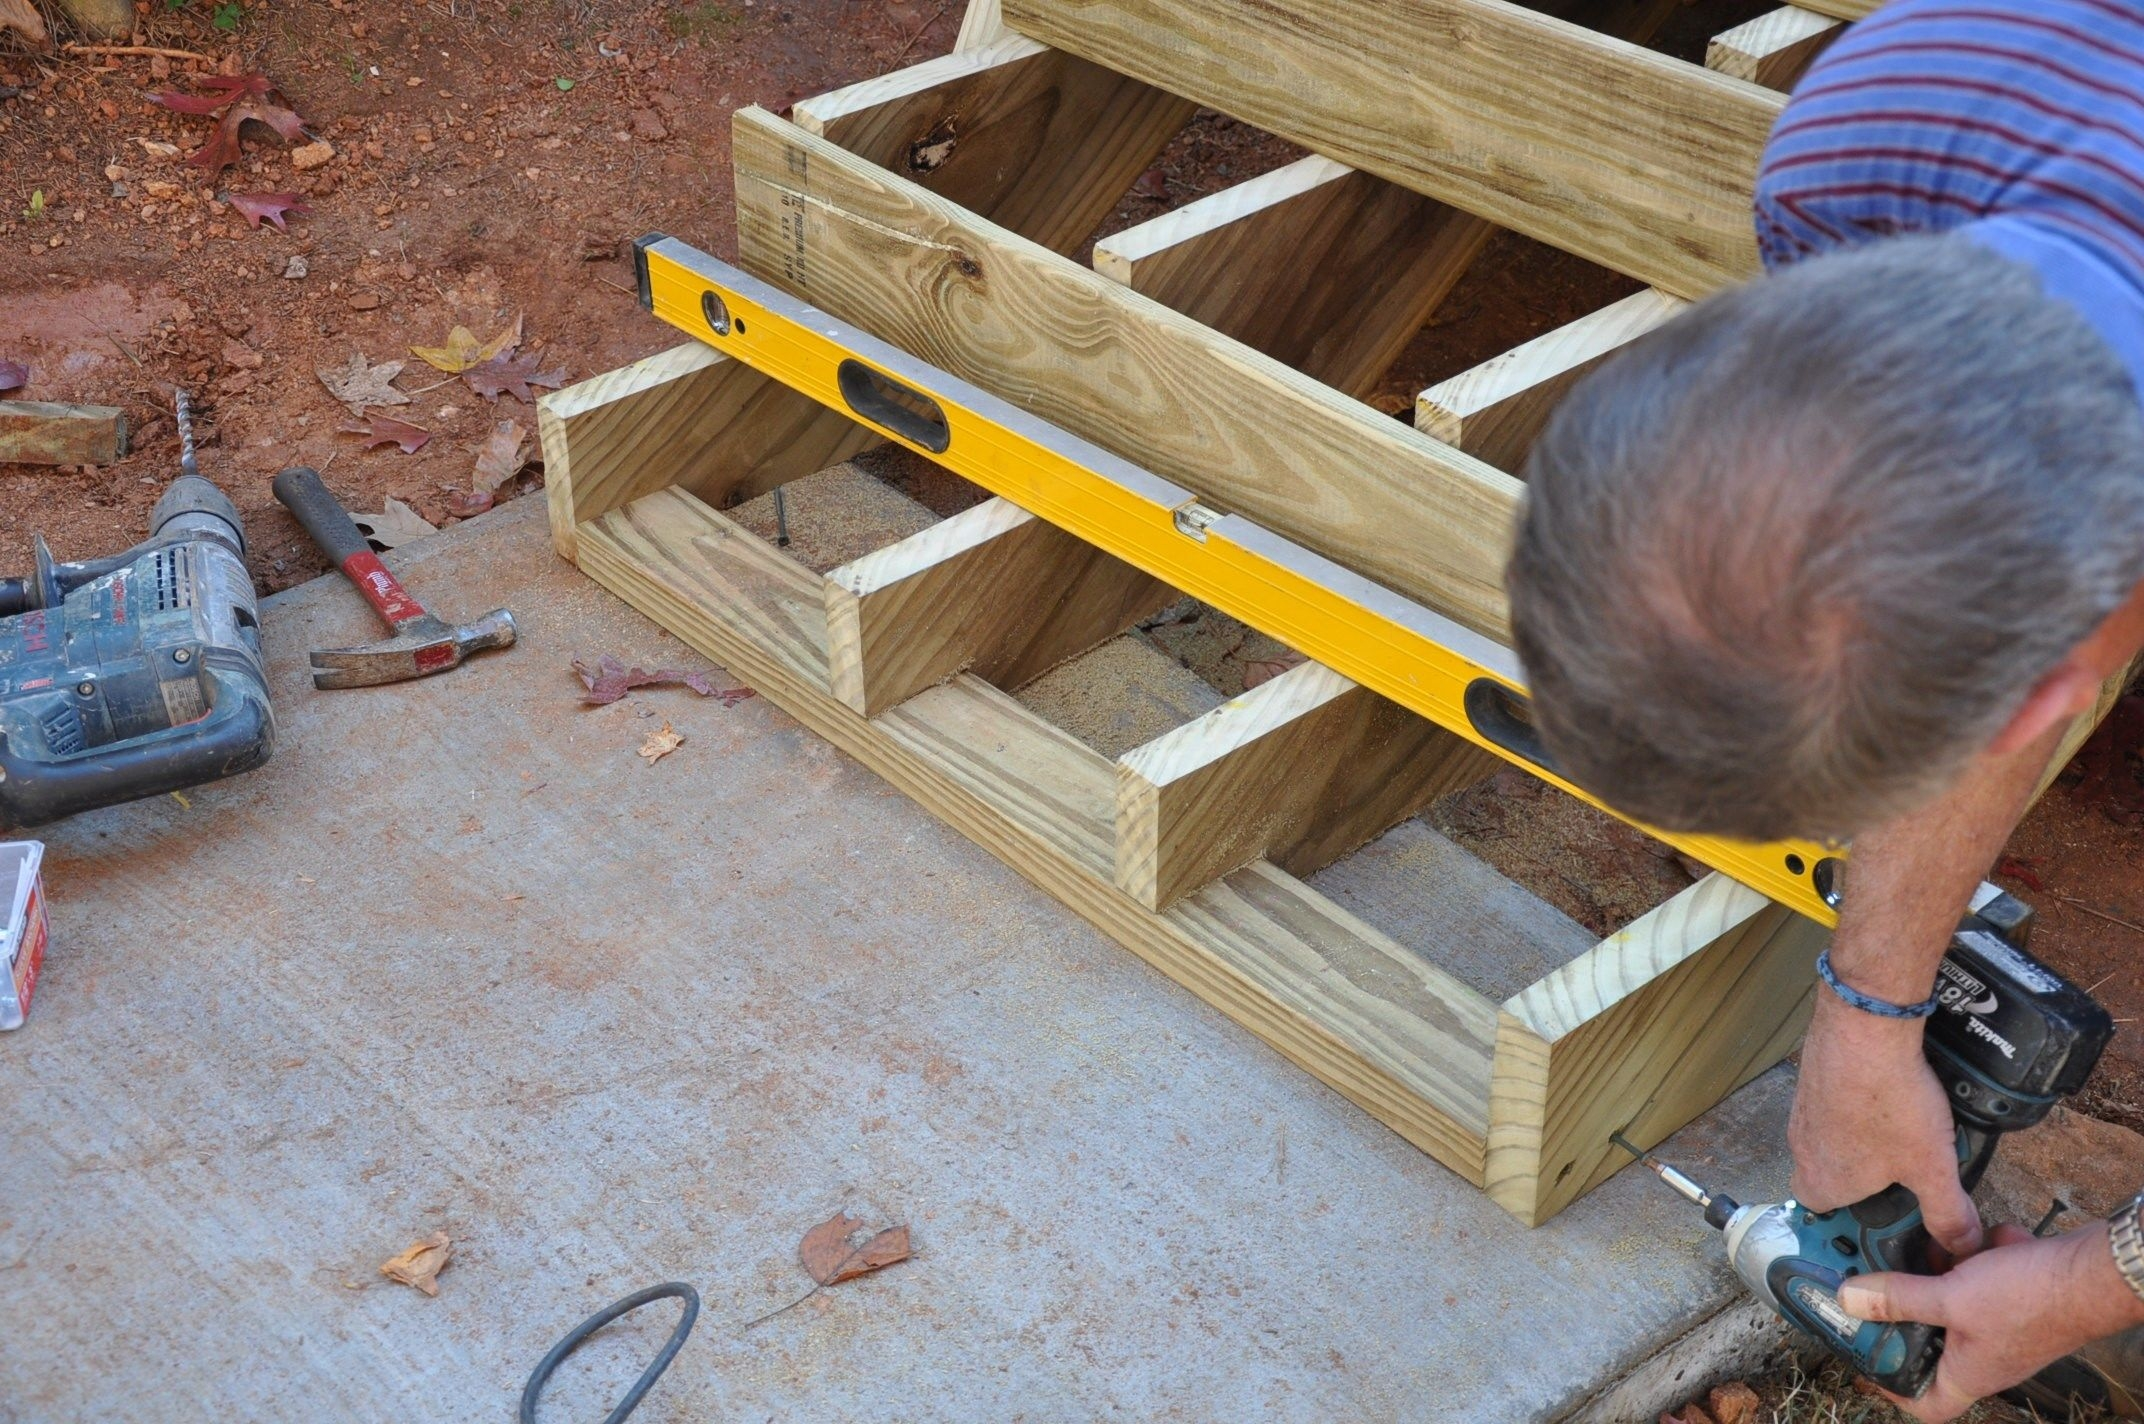 How To Anchor Deck Stairs To Concrete Decks Com | Attaching Wood To Concrete Steps | Composite Decking | Handrail | Staircase | Screws | Deck Stairs